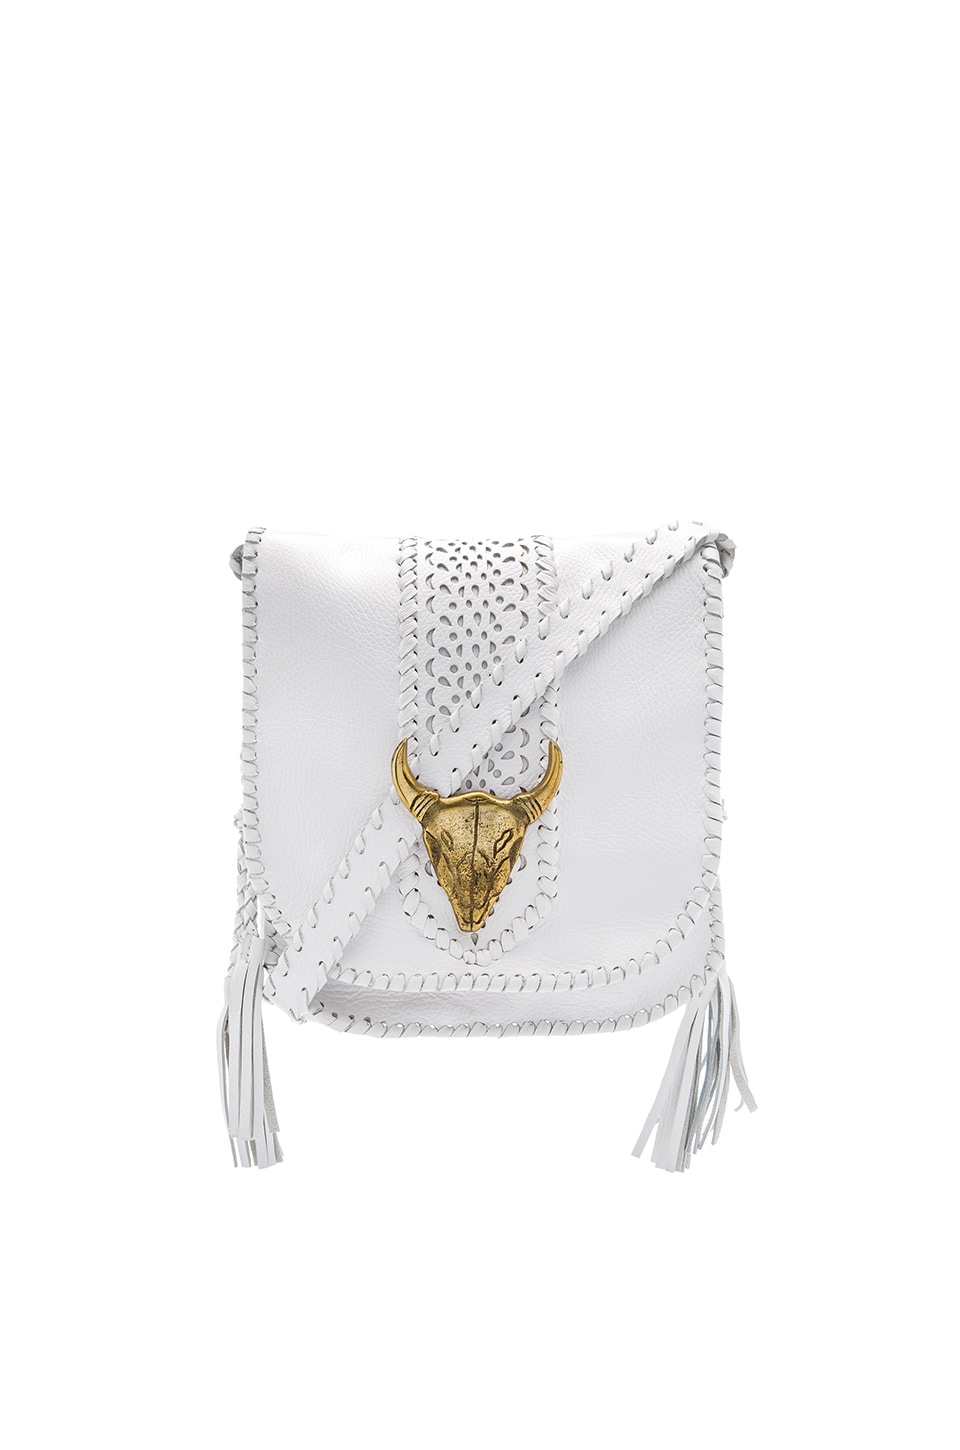 STELA 9 Isa Saddle Bag in Ivory & Bronze